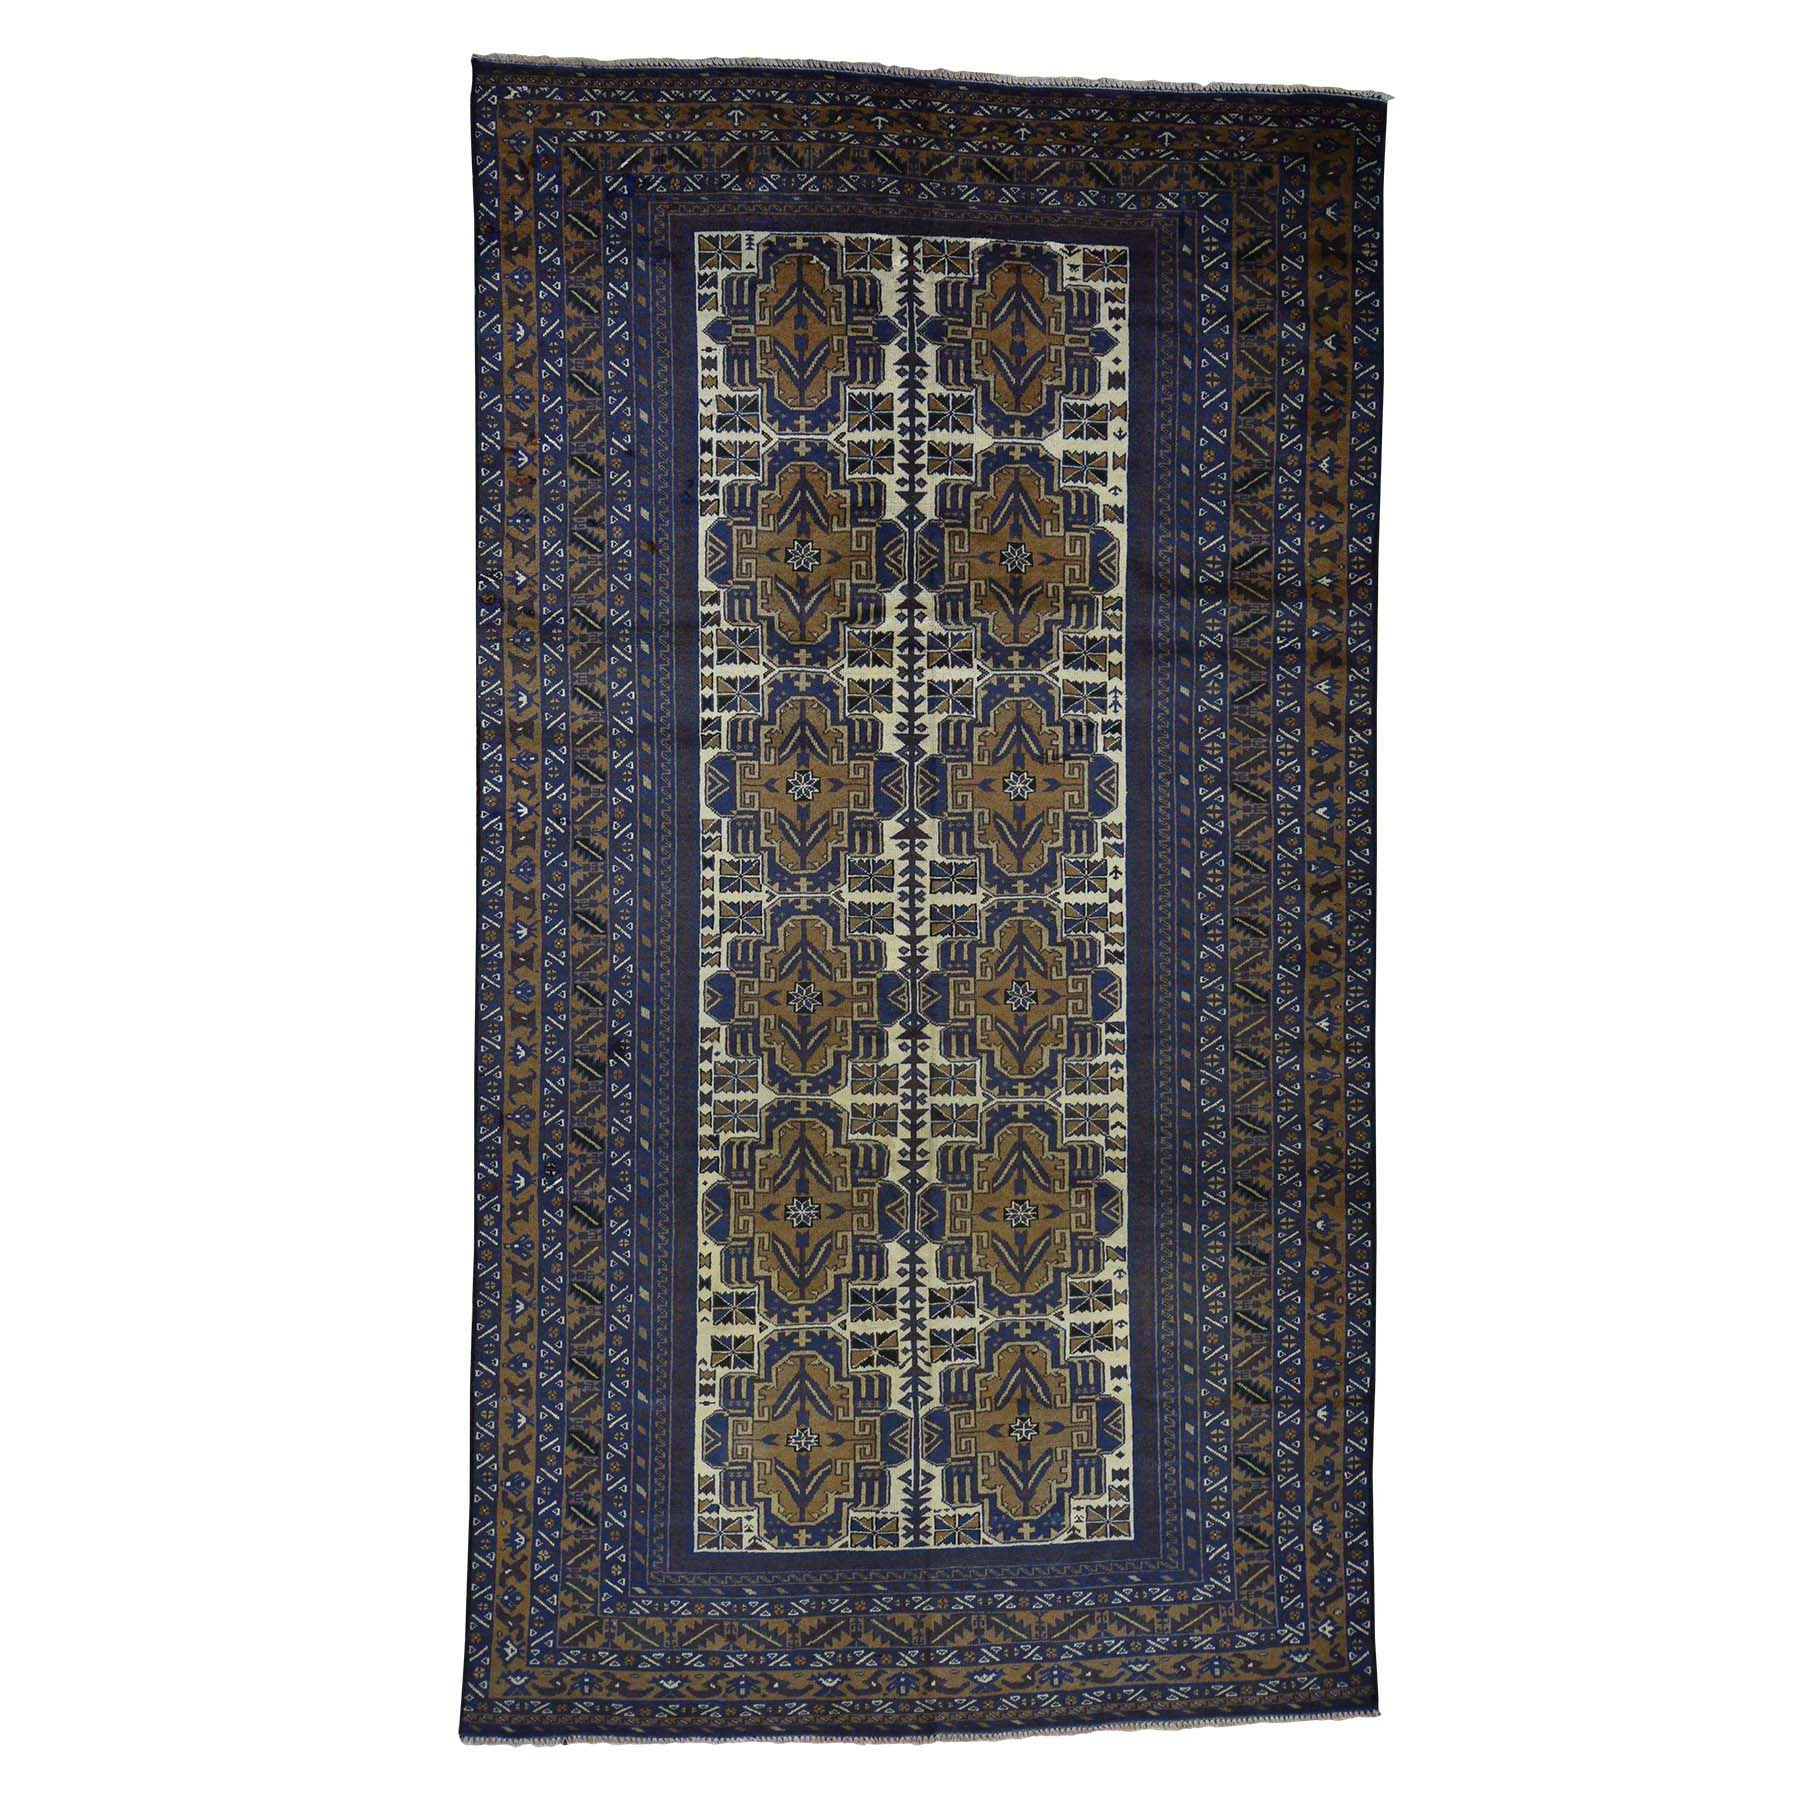 Nomadic And Village Collection Hand Knotted Blue Rug No: 0180810